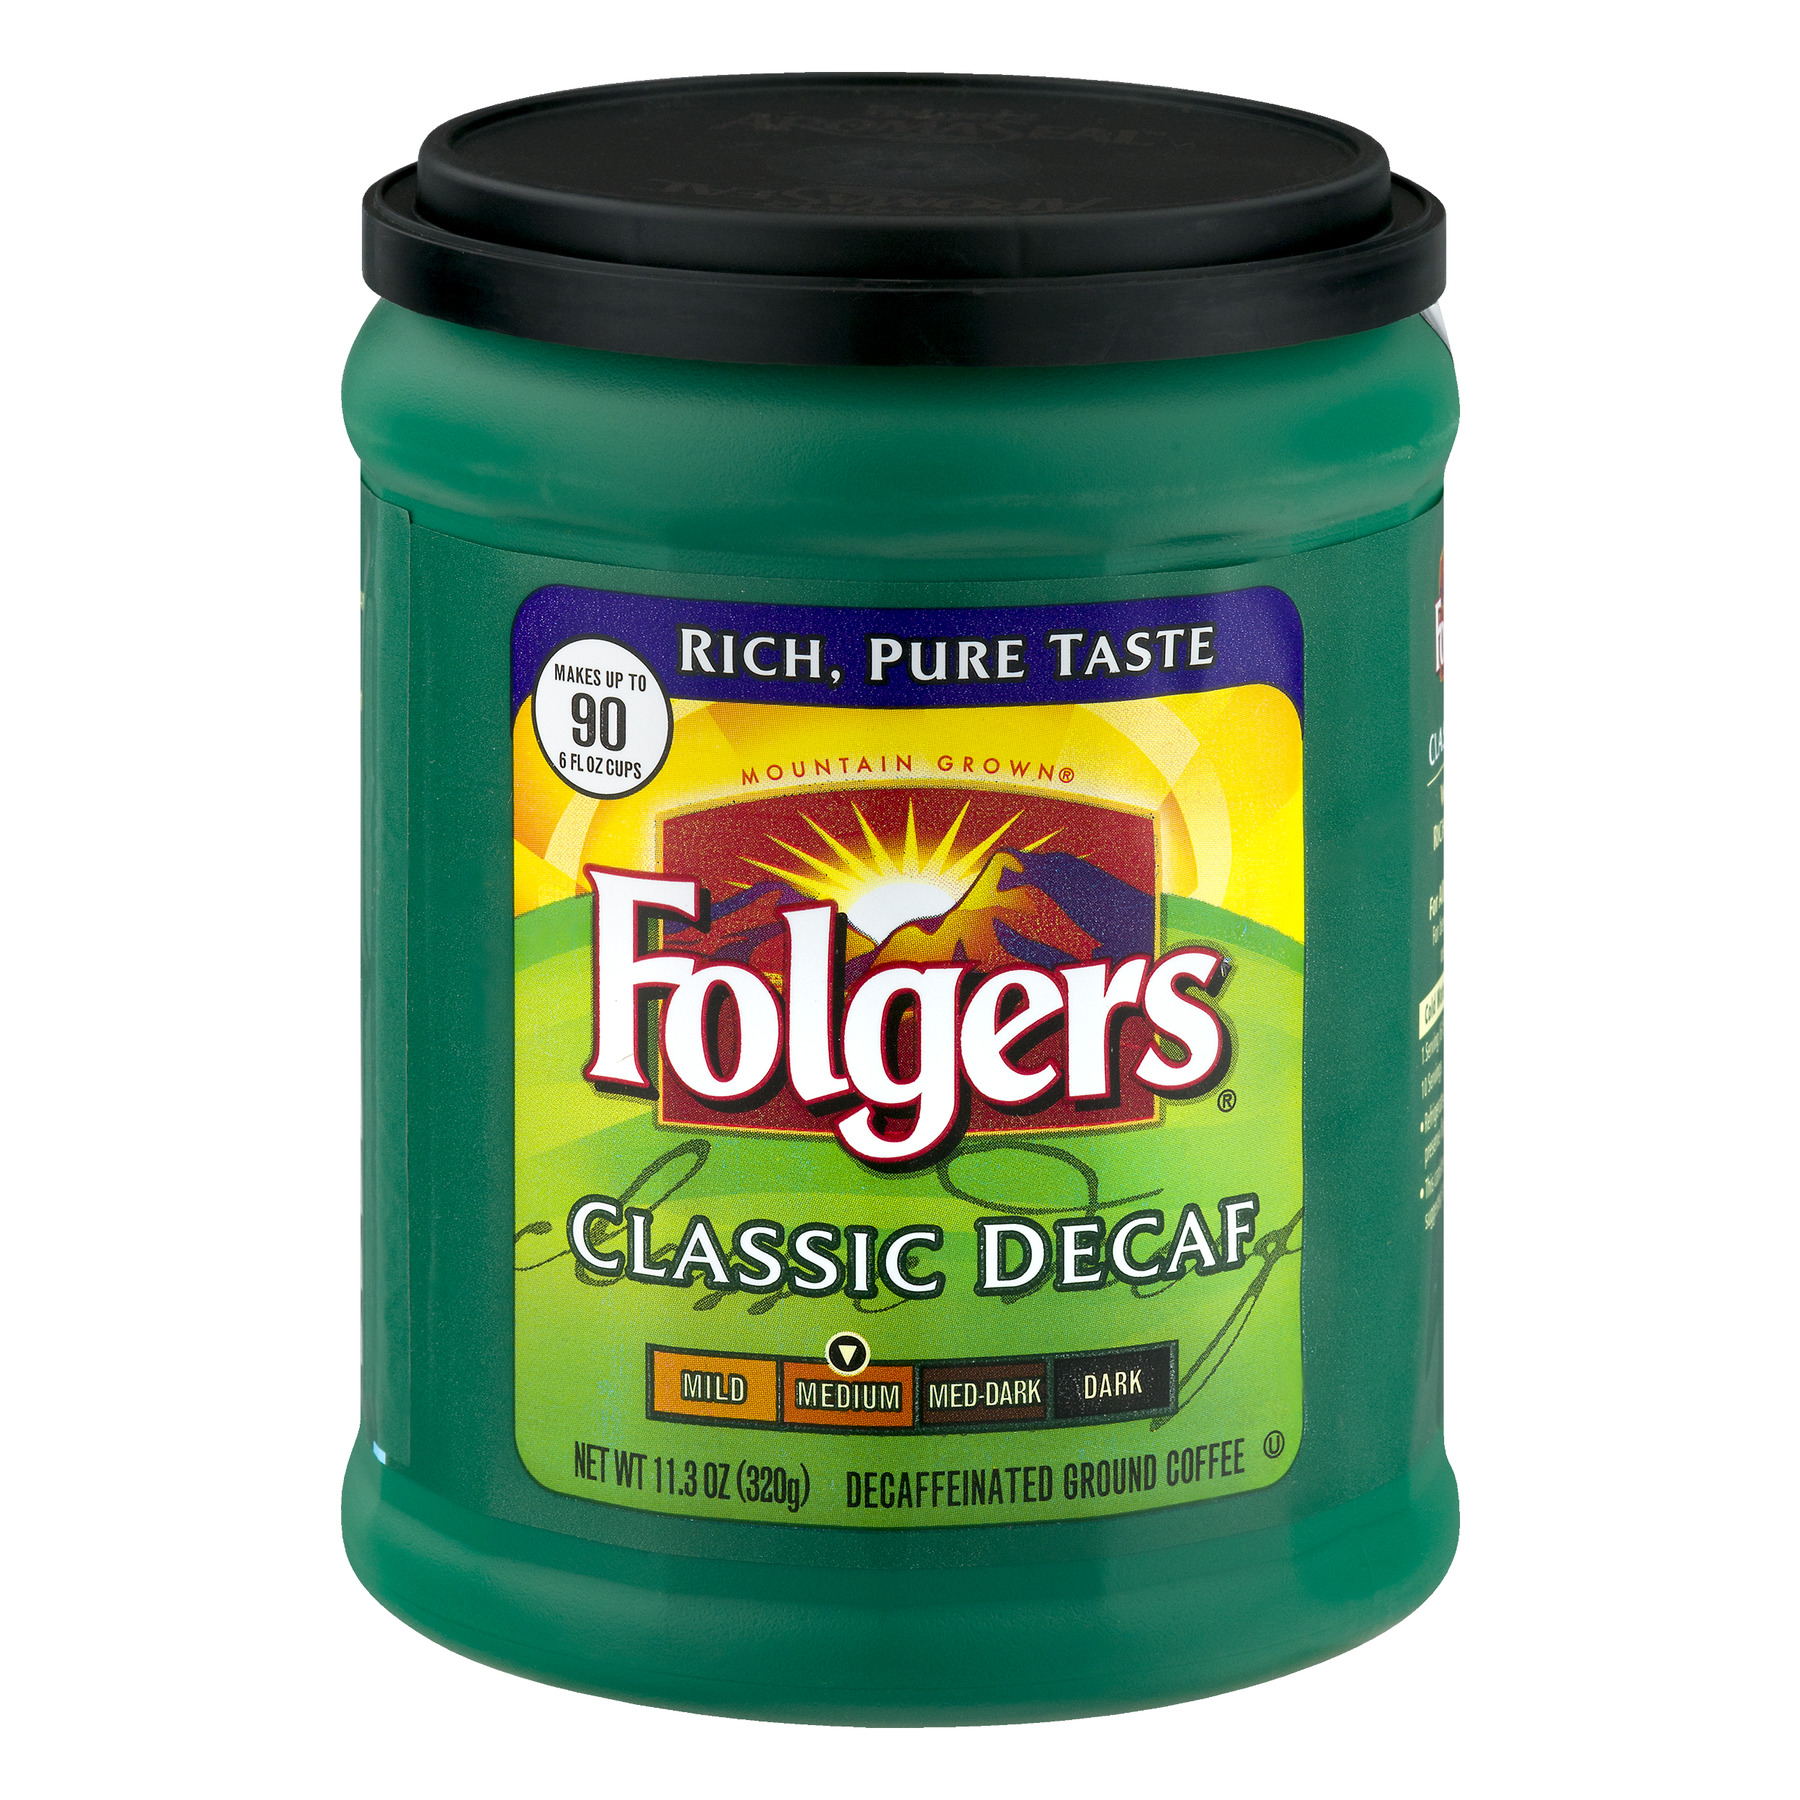 Folgers Classic Decaf Medium Ground Coffee, 11.3 oz